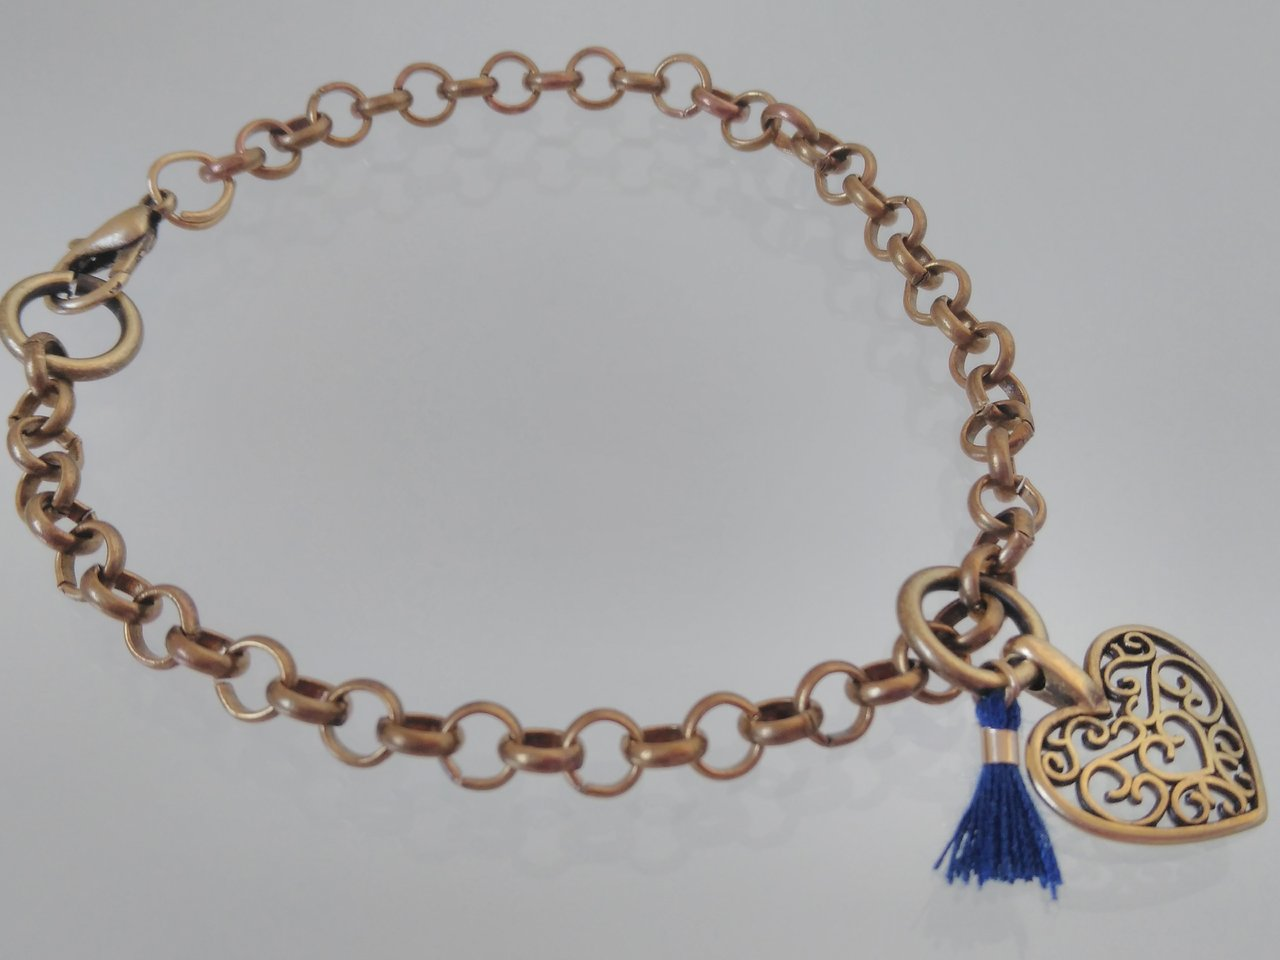 BRASS CHAIN  BRACELET WITH A HEART